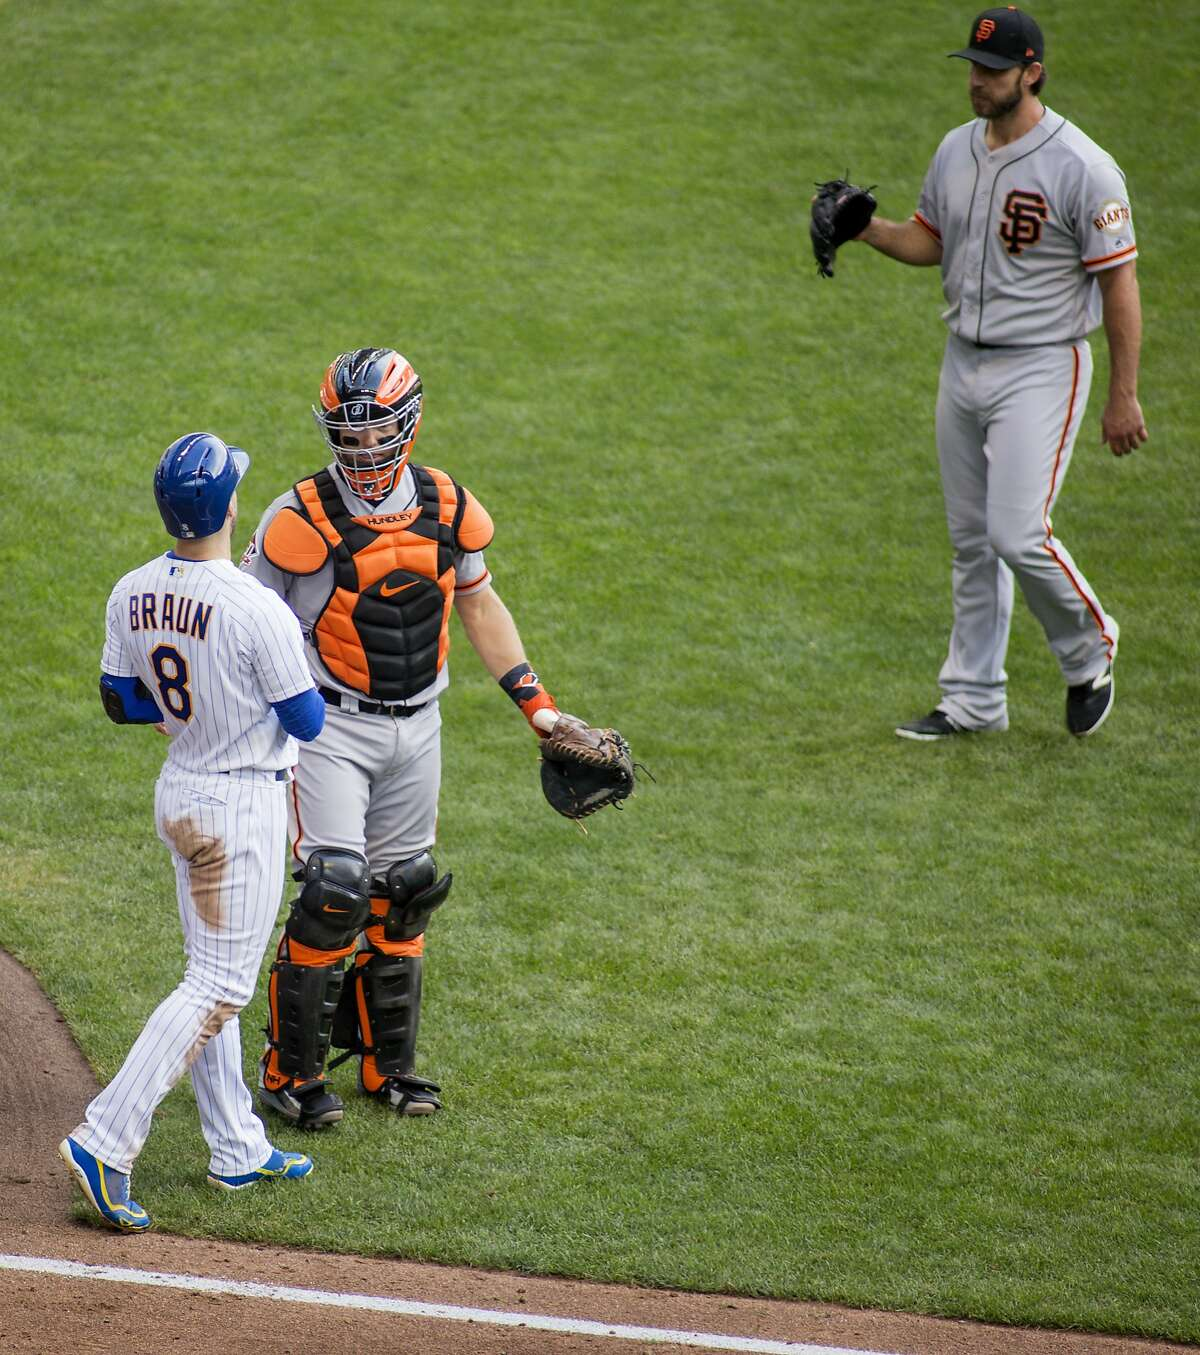 Milwaukee Brewers' Ryan Braun, left, reacts to San Francisco Giants' Madison Bumgarner, right, after being hit by a pitch during the sixth inning of an baseball game Sunday, Sept. 9, 2018, in Milwaukee. (AP Photo/Darren Hauck)